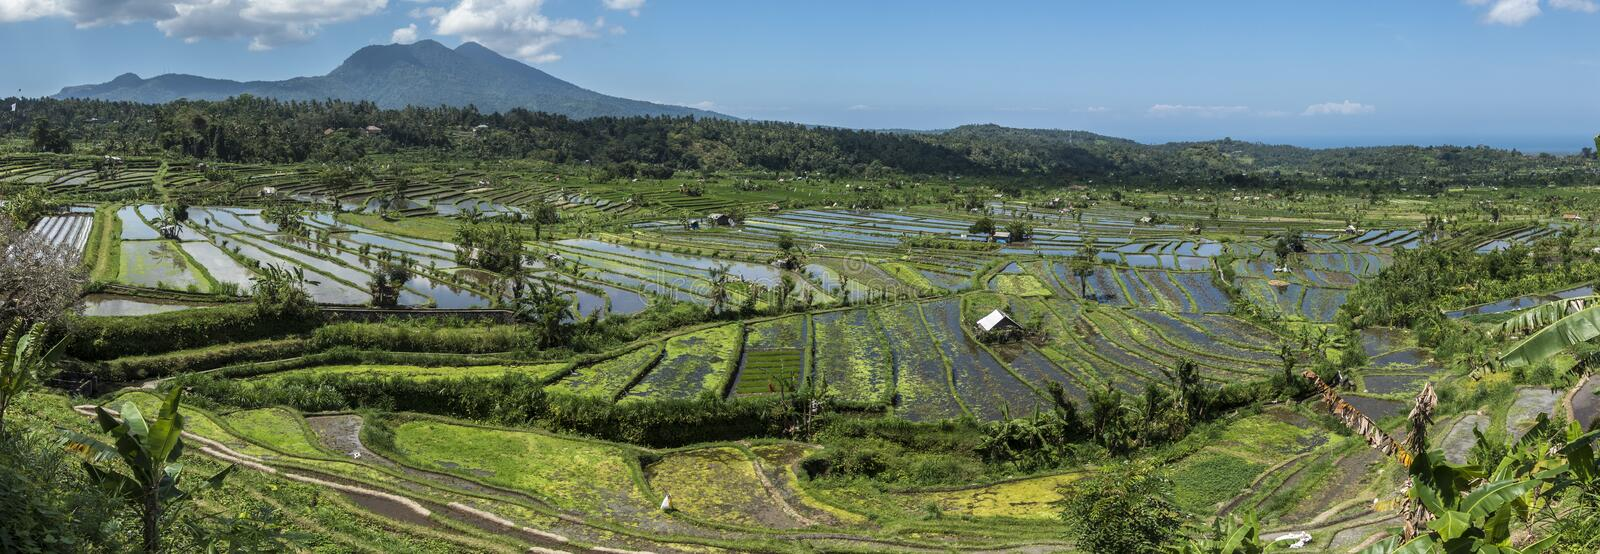 Rice fields panorama and volcano royalty free stock images